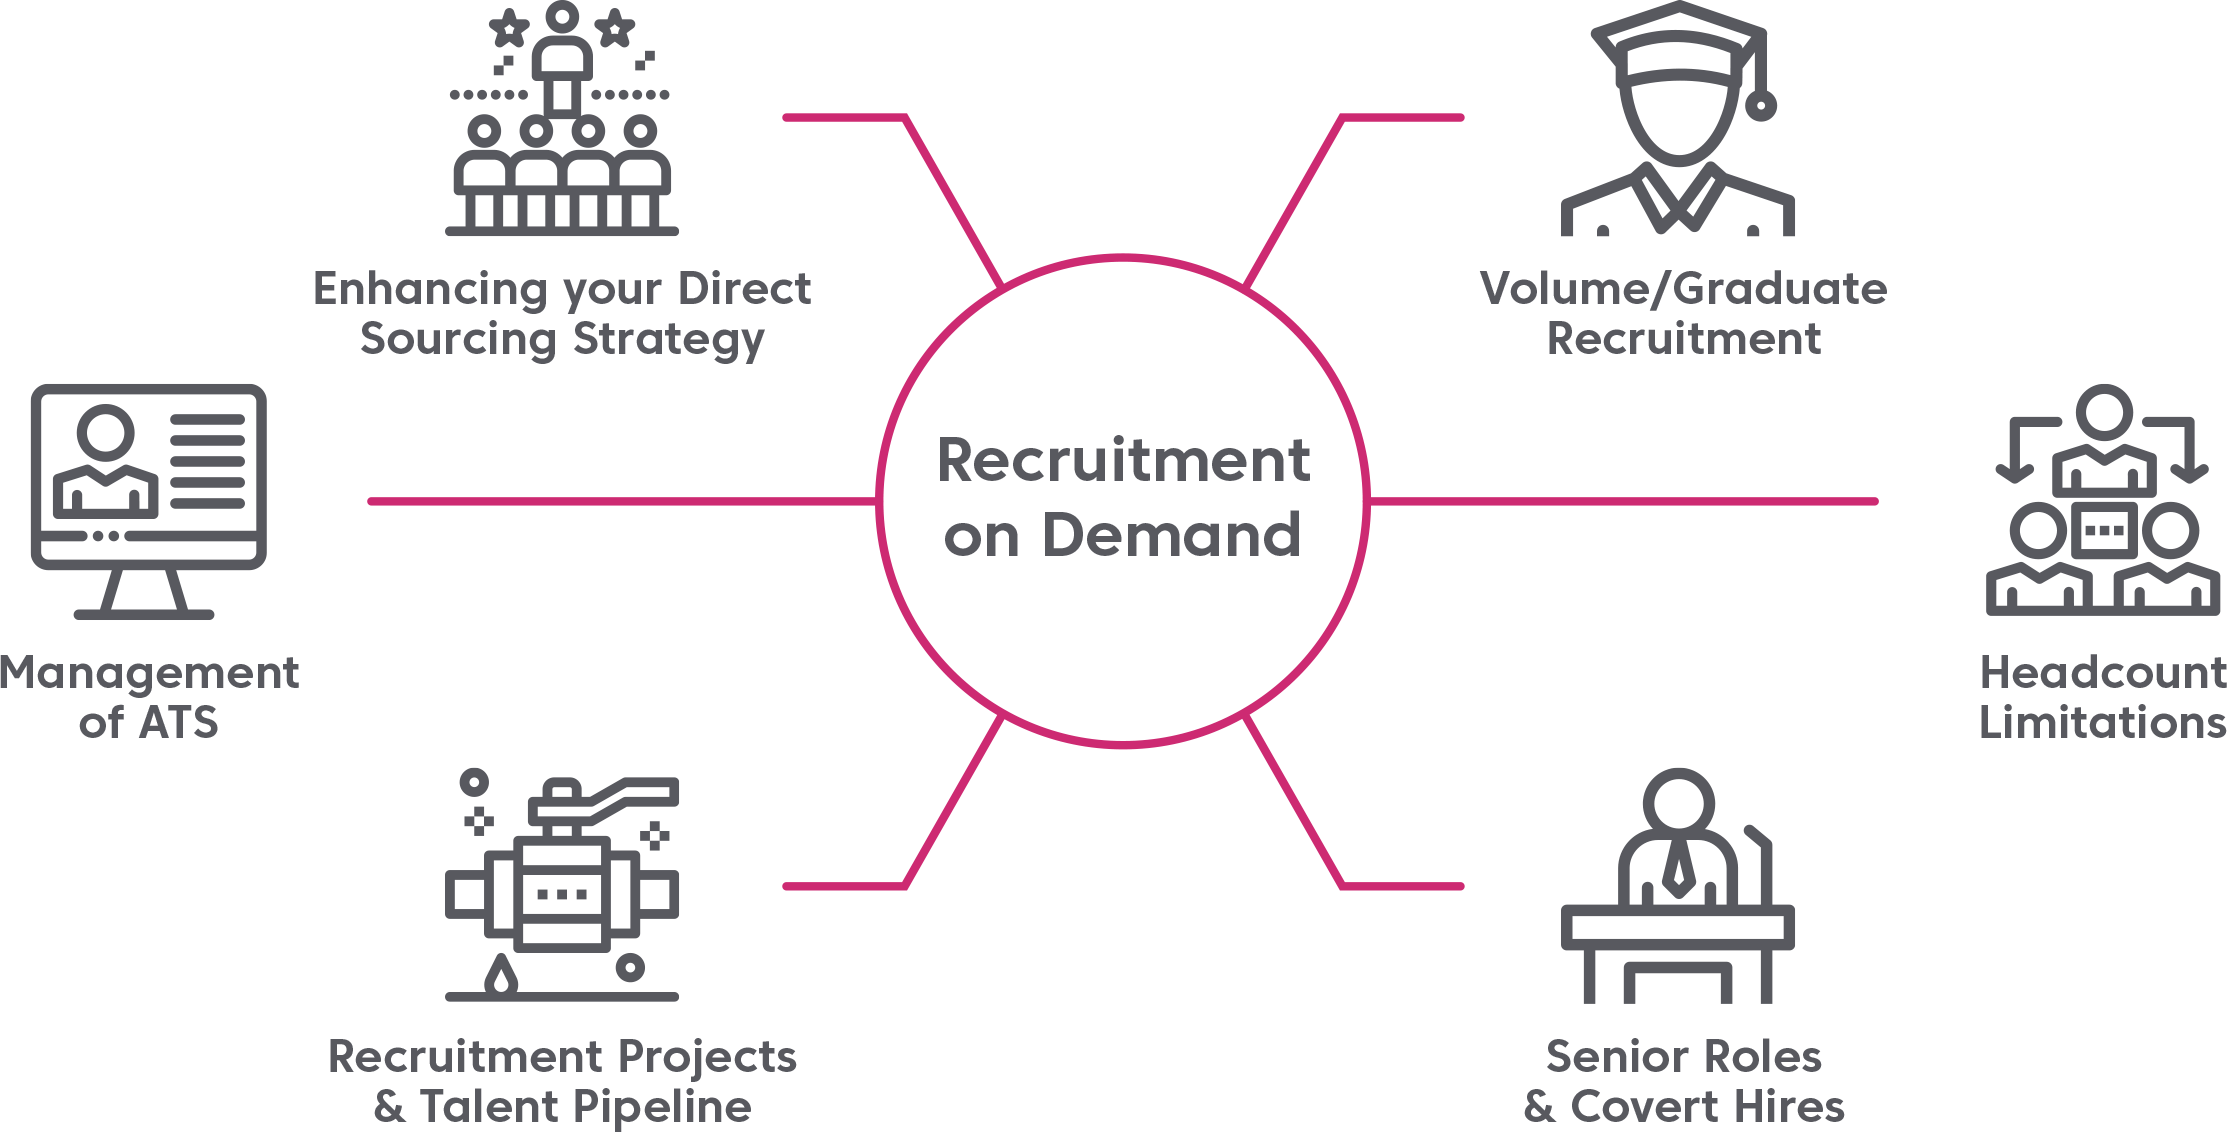 Recruitment-On-Demand